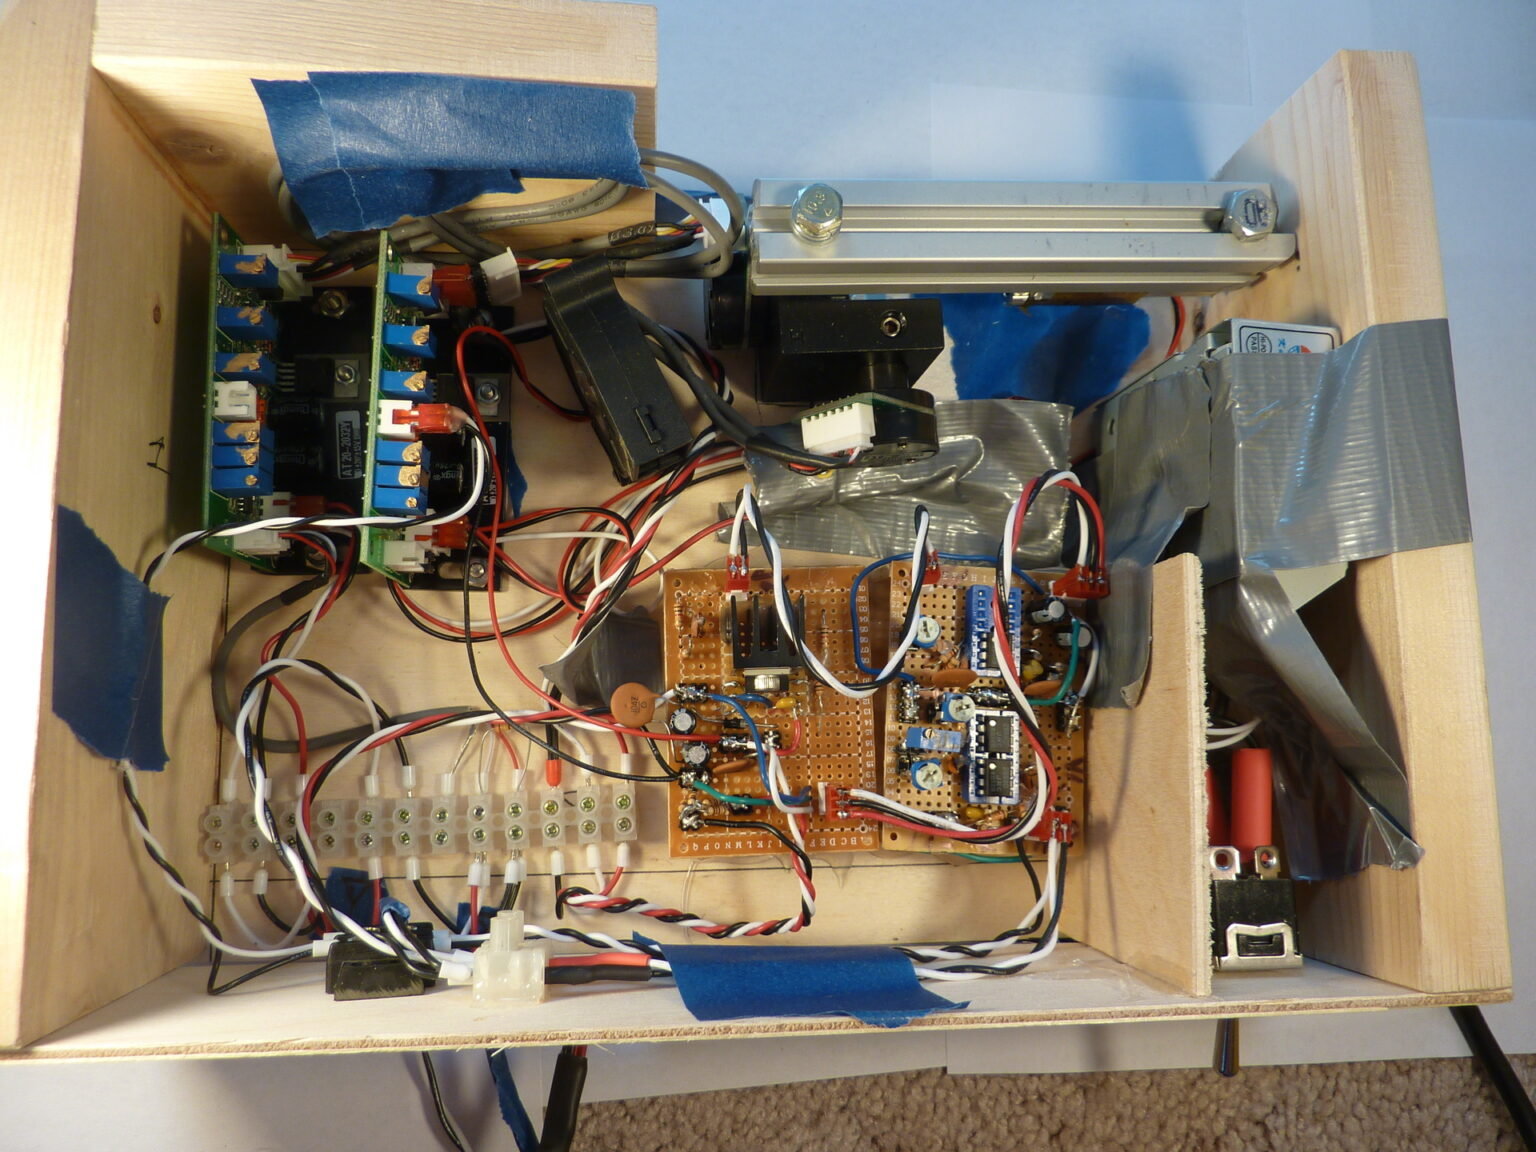 Control system for a laser galvonometer, built as a final project for a controls systems class.